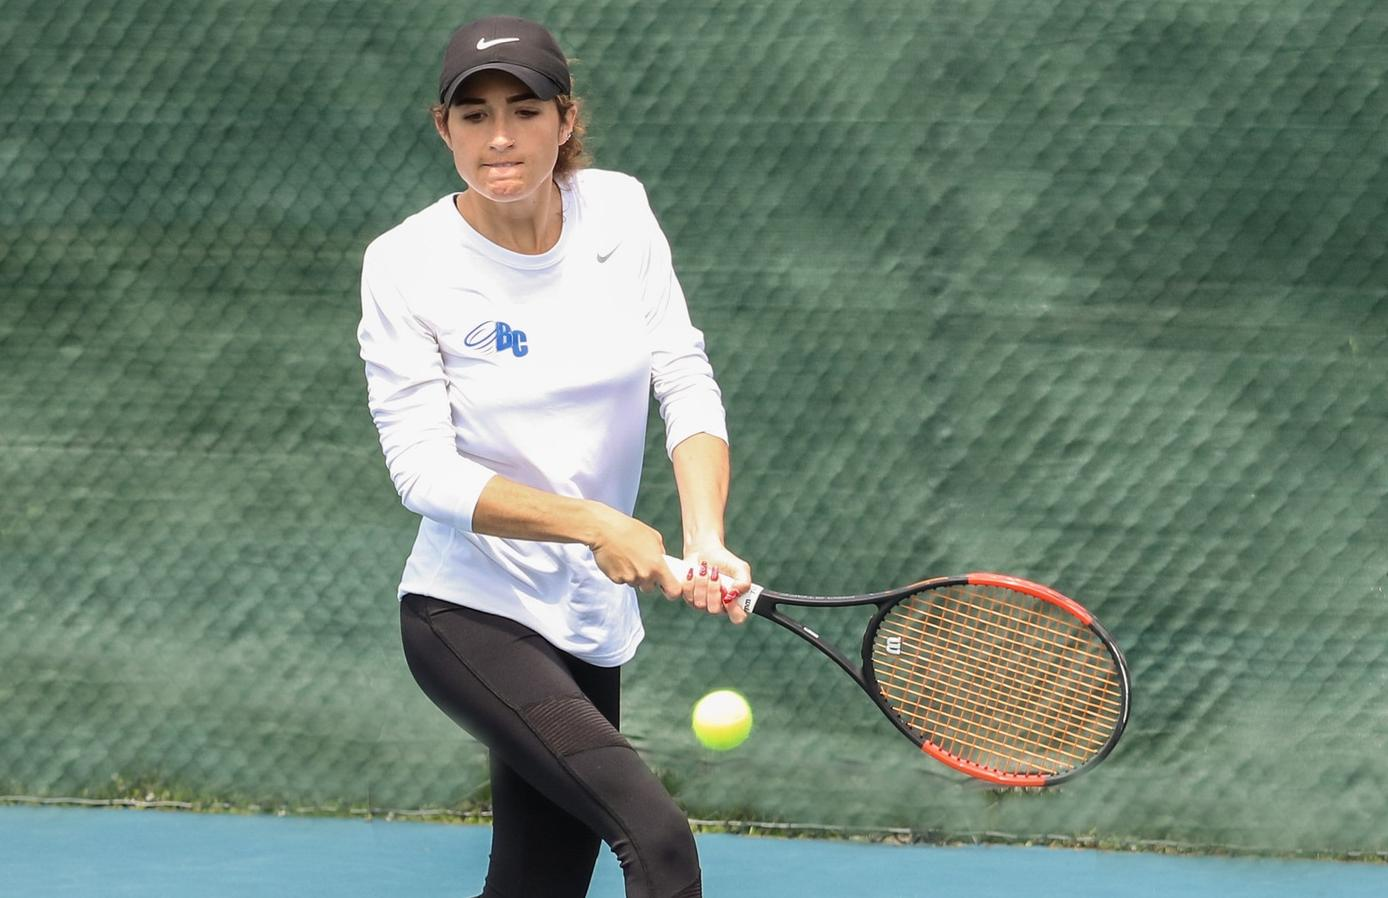 Samantha Sepe Wins Number-One Singles Match in Team Setback